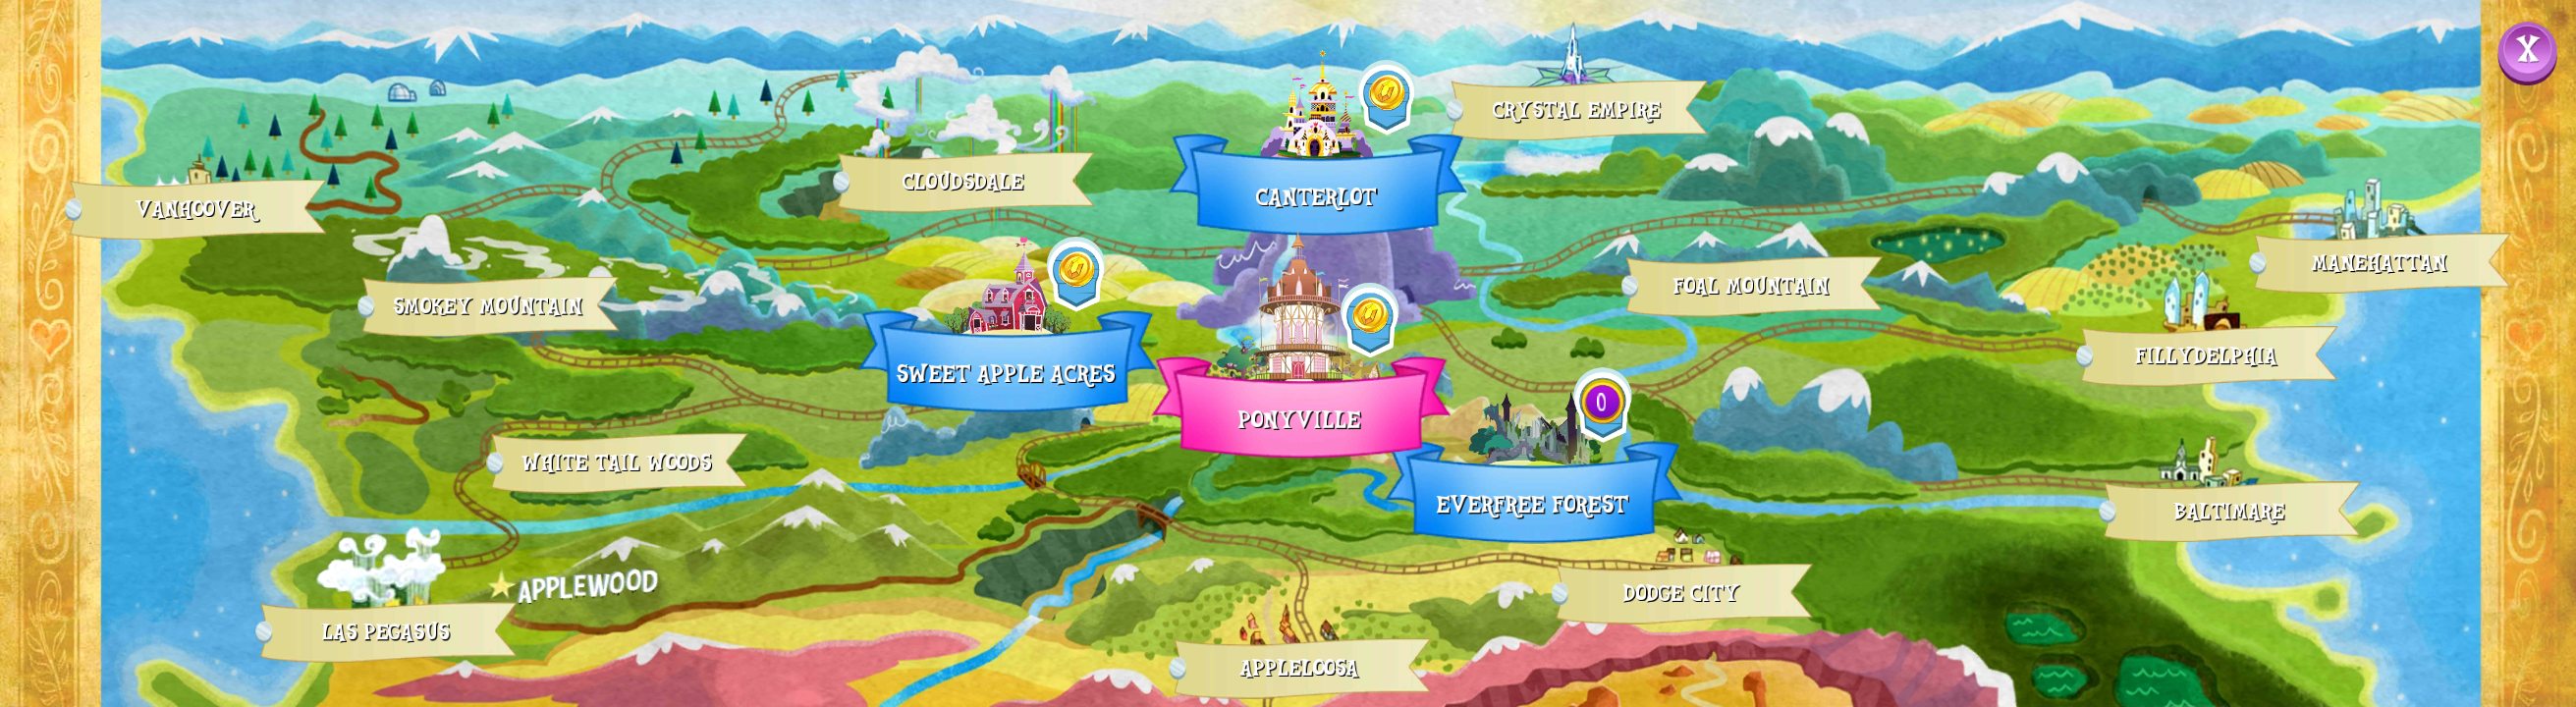 Image world overviewg the my little pony gameloft wiki world overviewg gumiabroncs Gallery